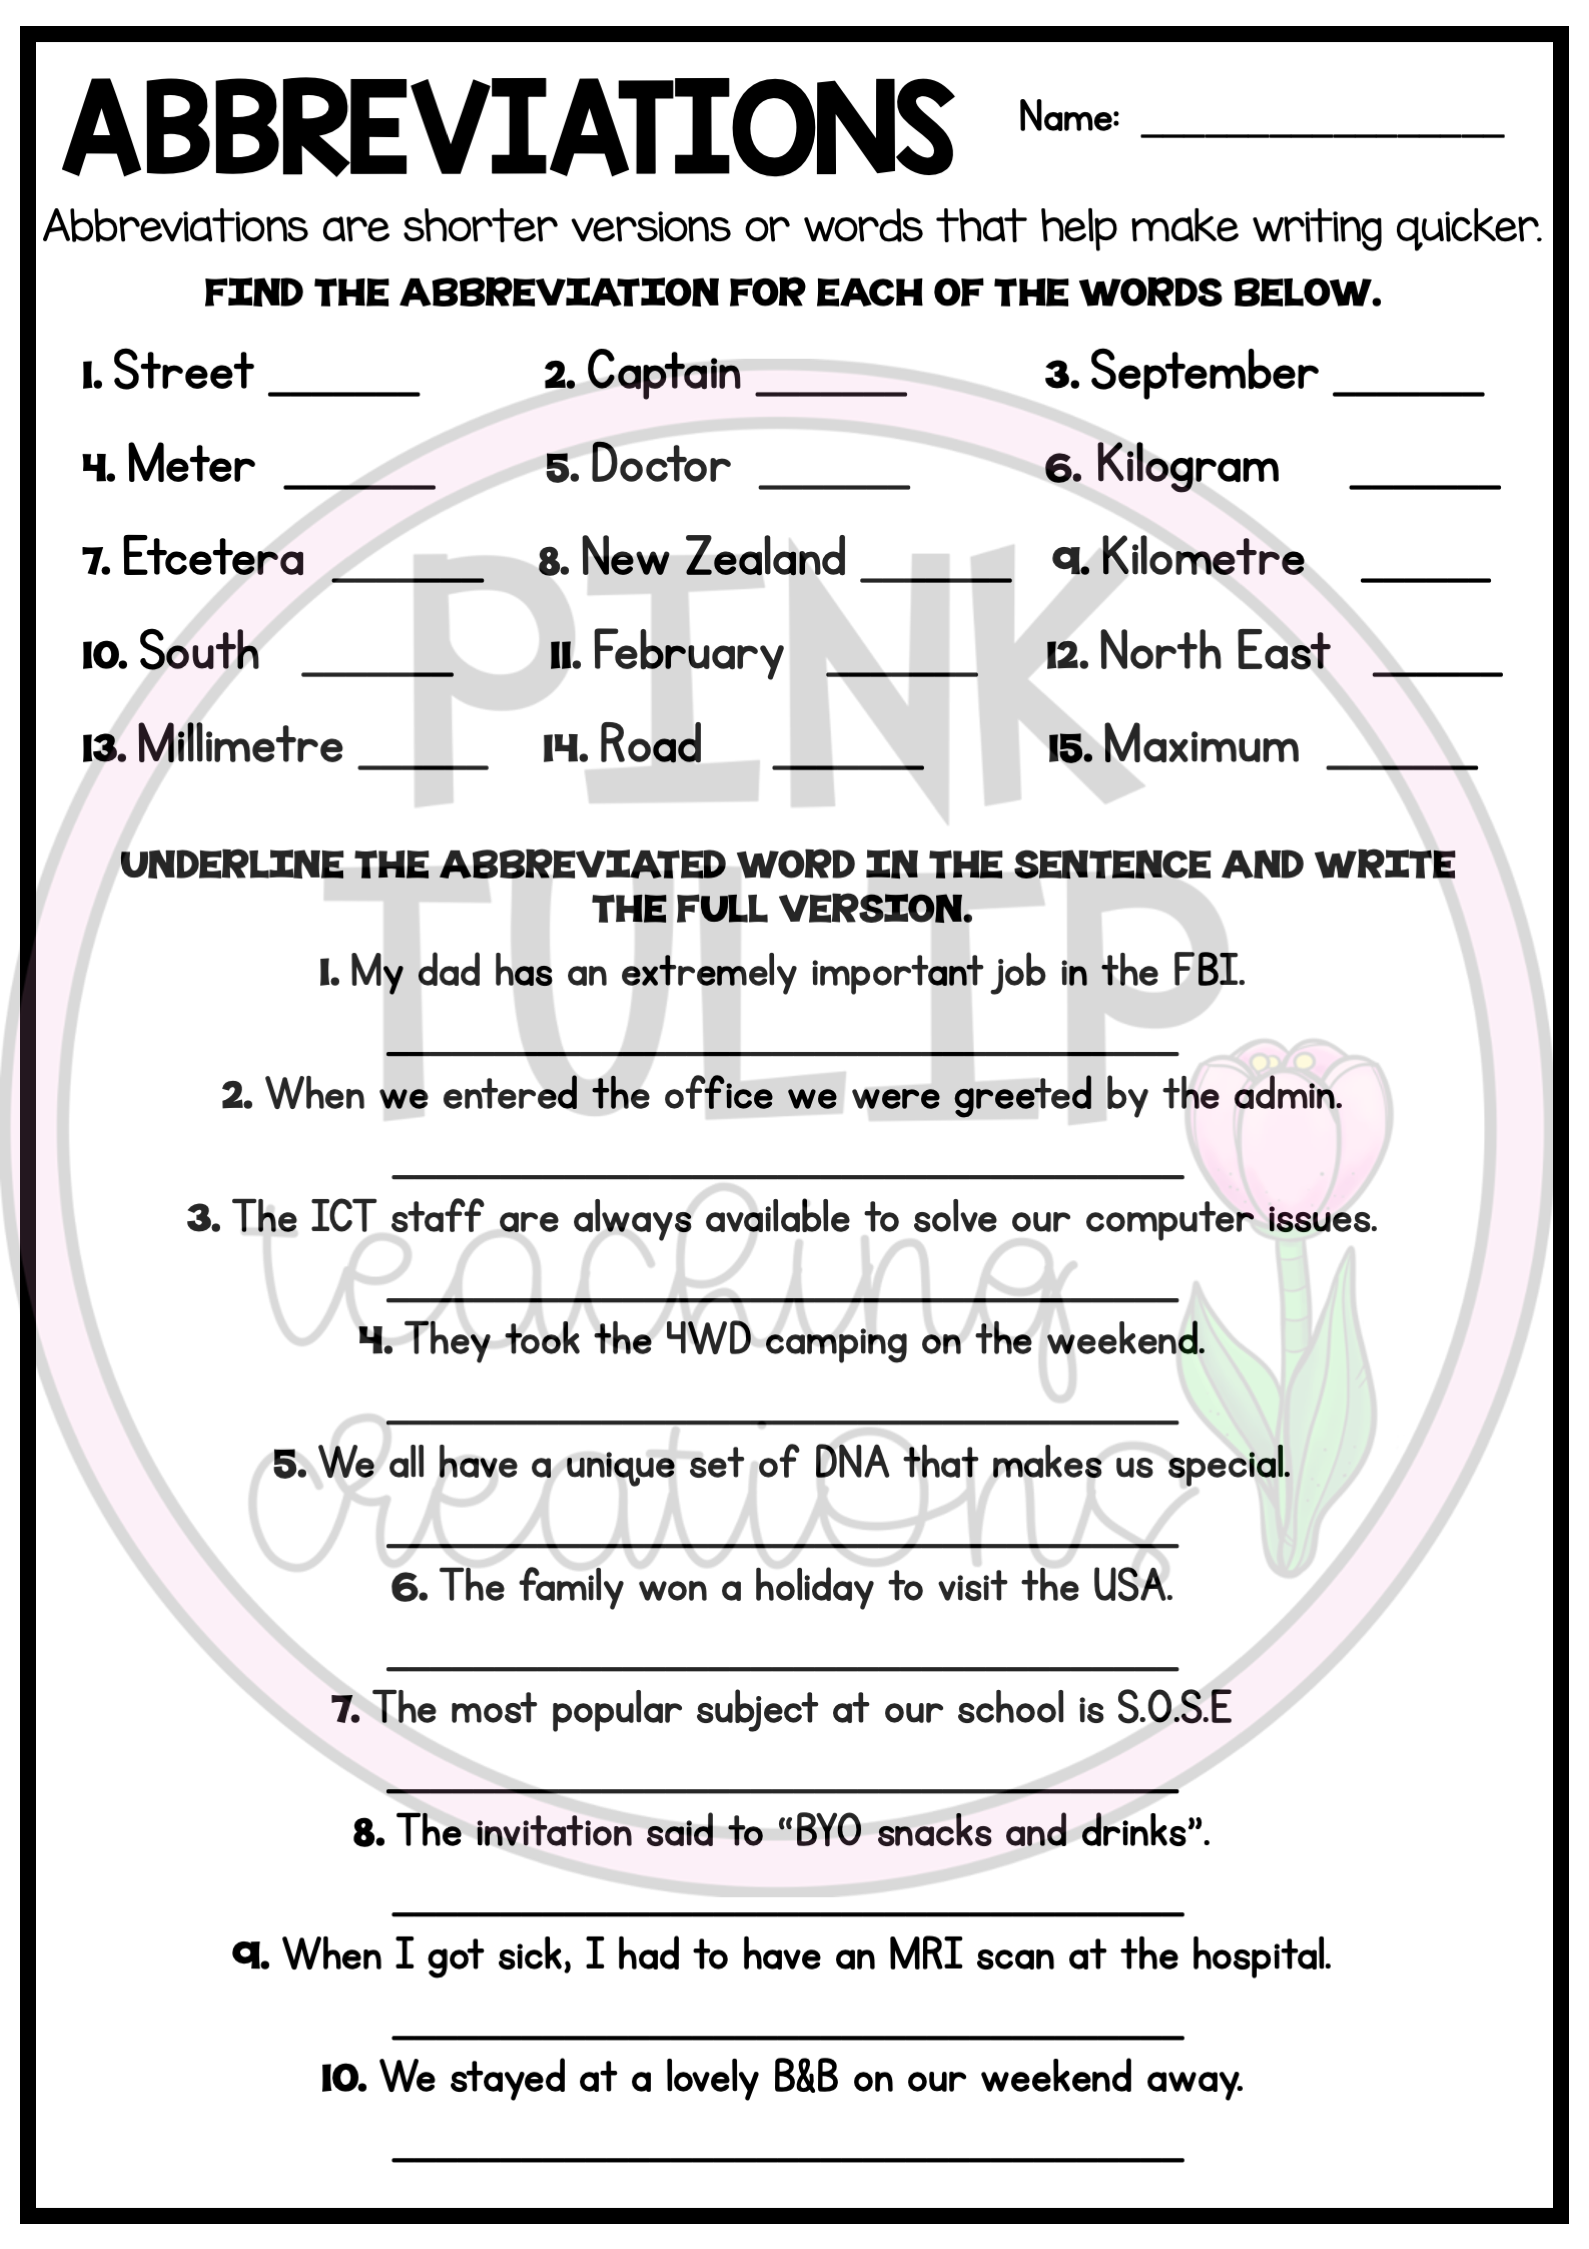 Abbreviations Worksheets Printable   Printable Worksheets and Activities  for Teachers [ 2249 x 1589 Pixel ]